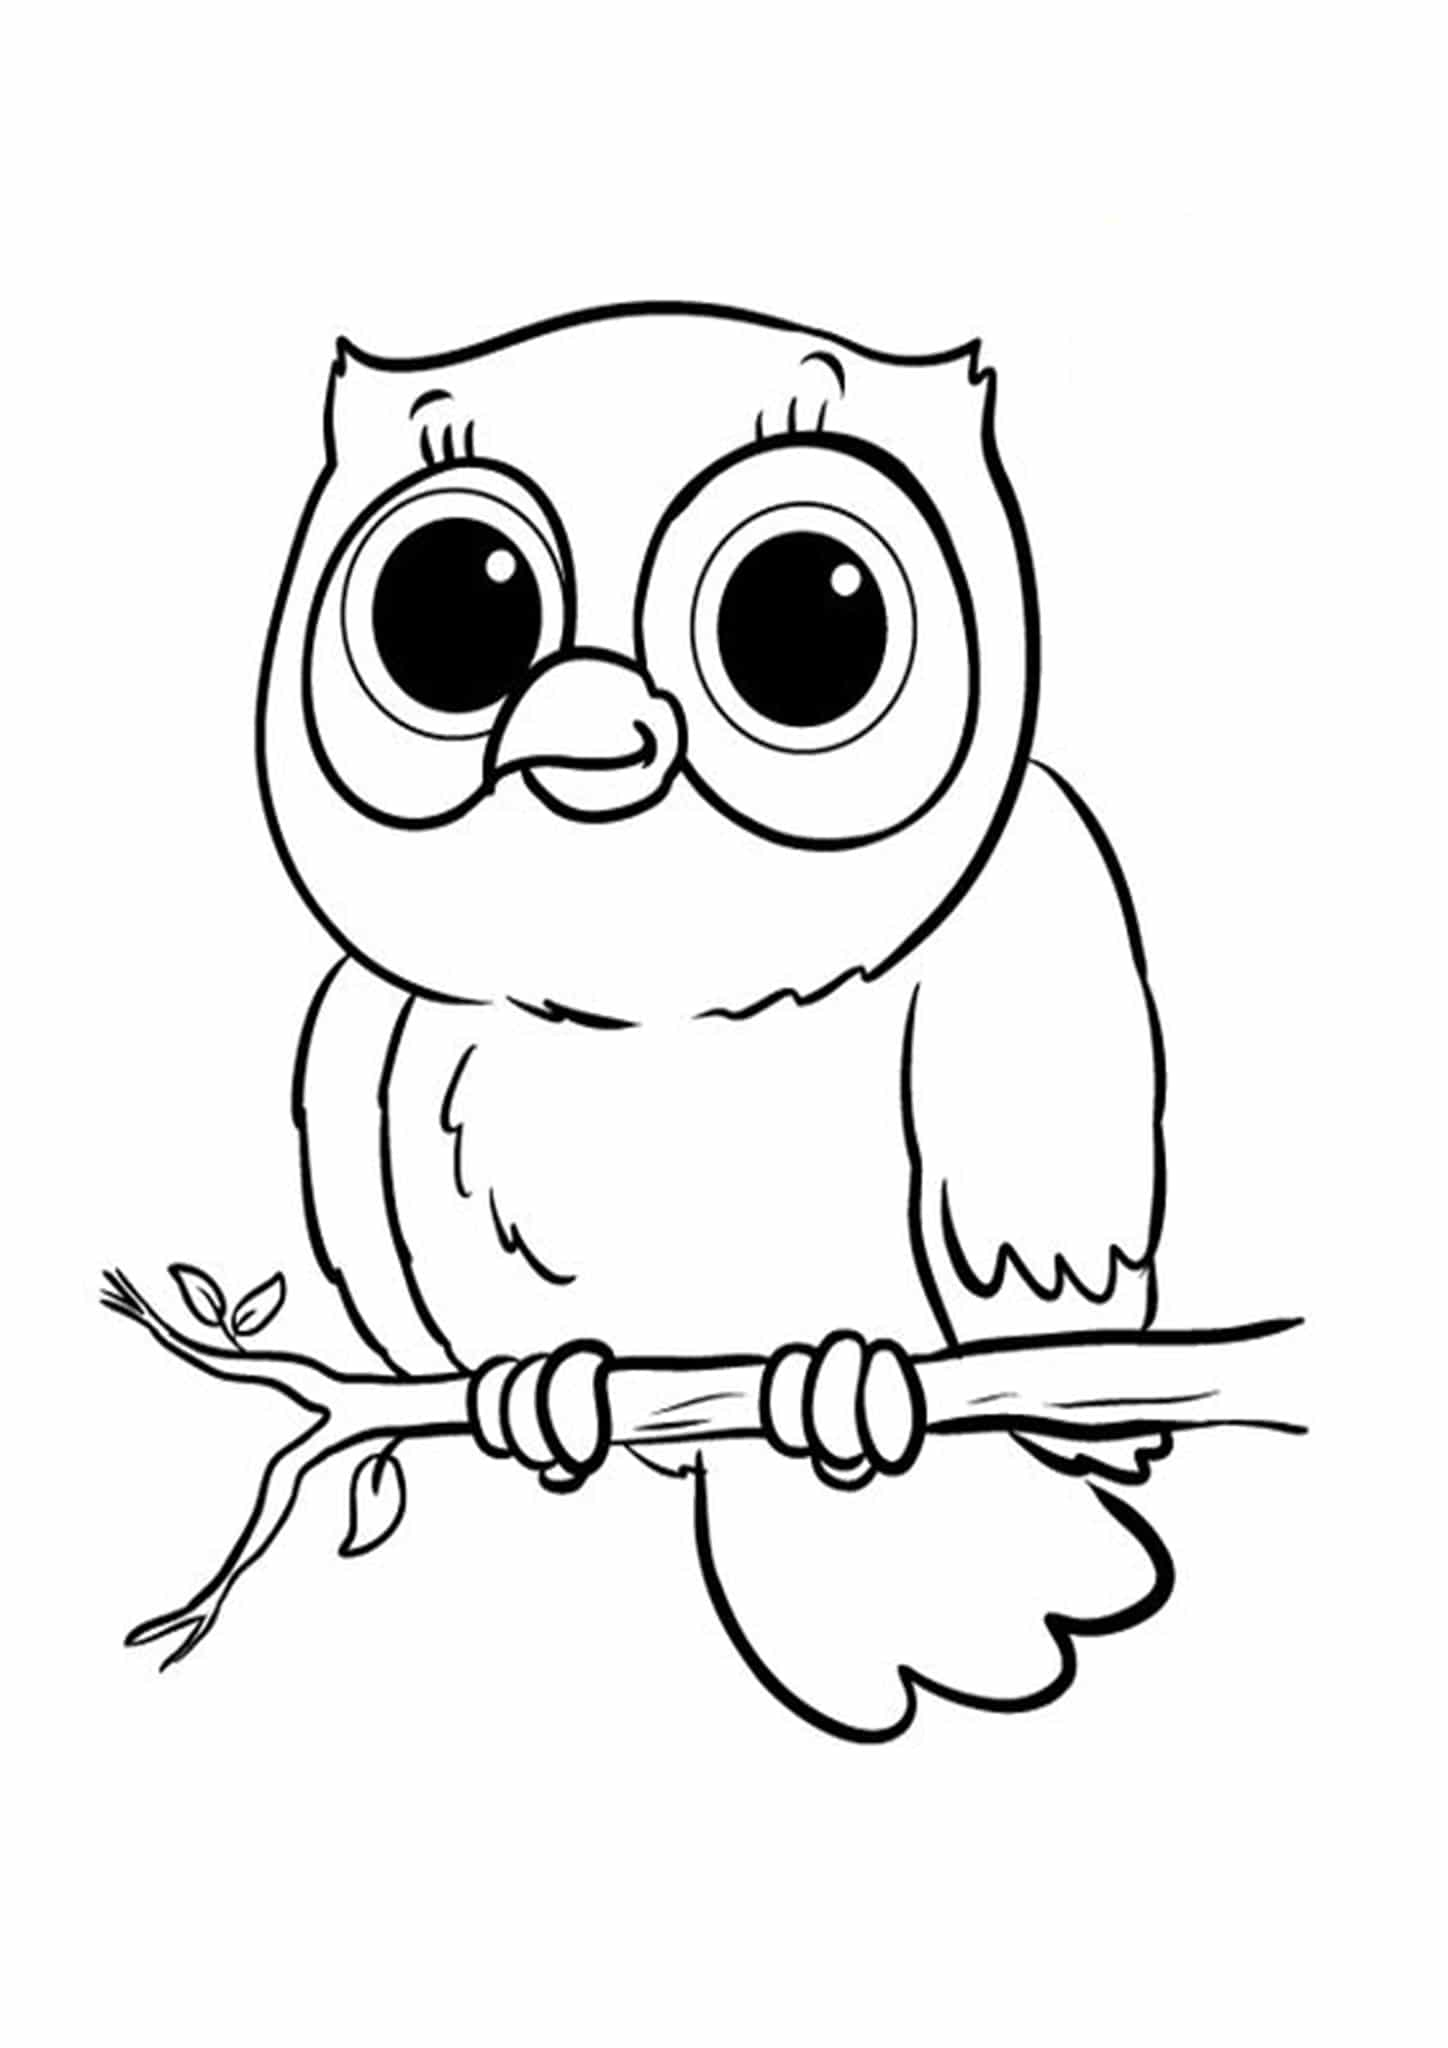 printable owl images printable owl template owl coloring pages and owl clipart printable owl images